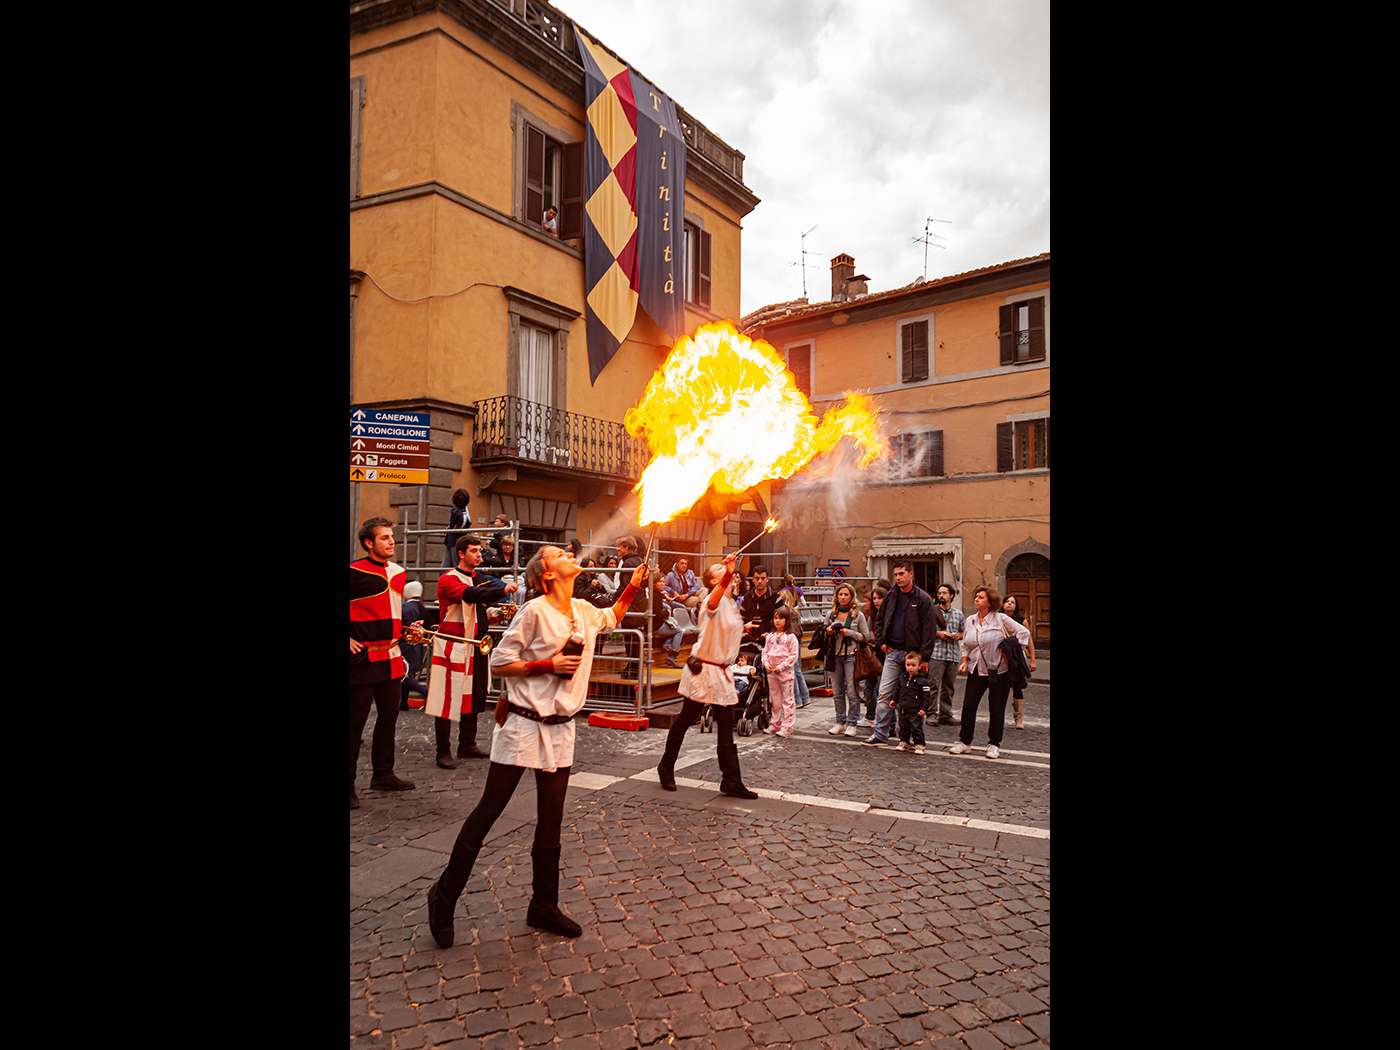 palio-fire-eaters-or-that-curry-was-hot-by-roy-backhouse